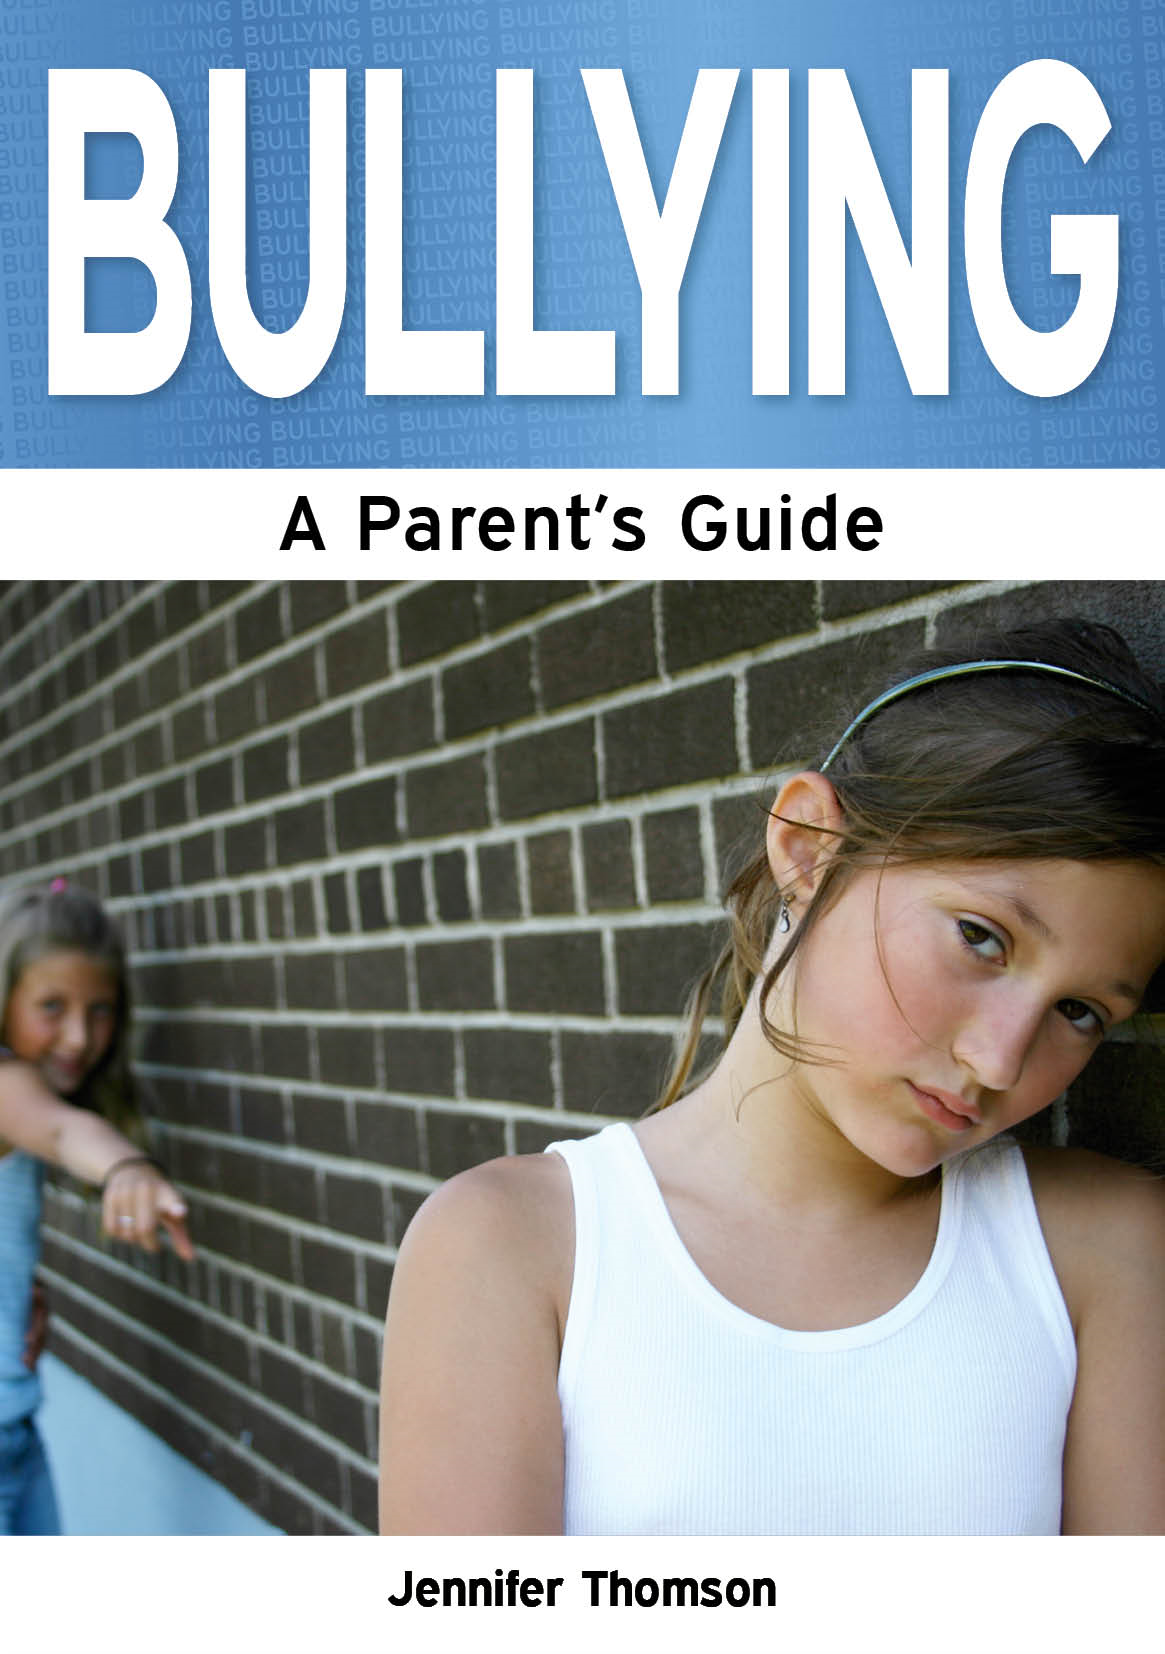 Bullying: A Parent's Guide